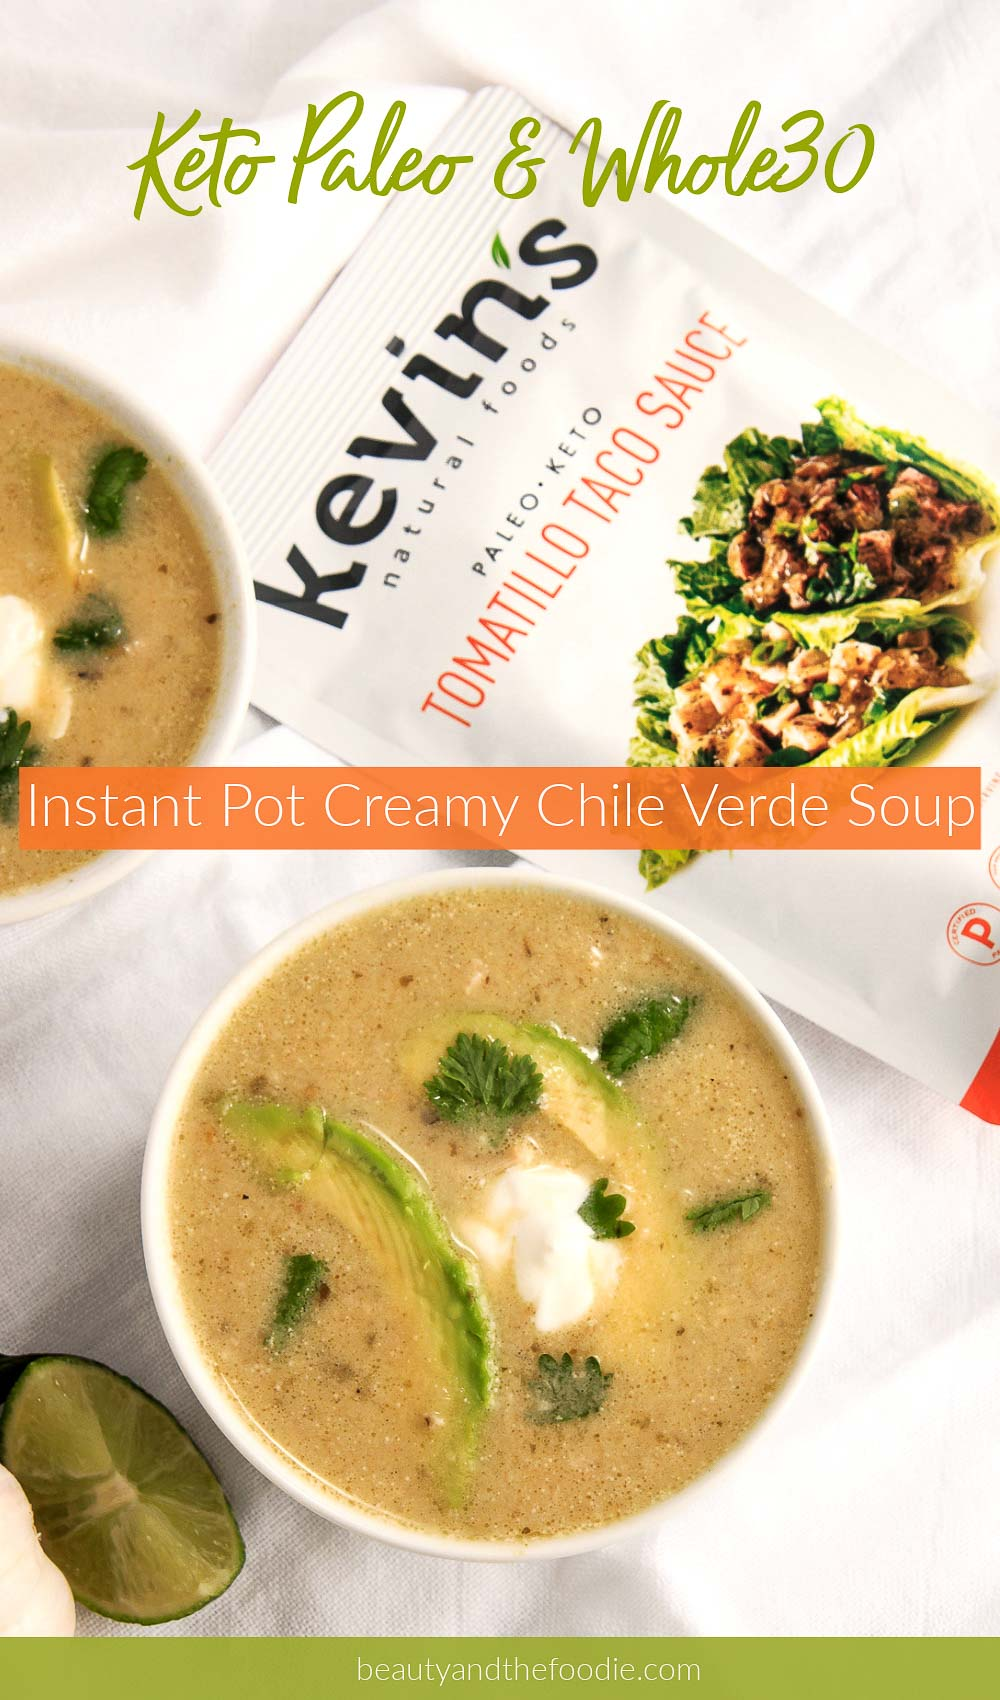 a creamy chile verde soup made in the Instant Pot.